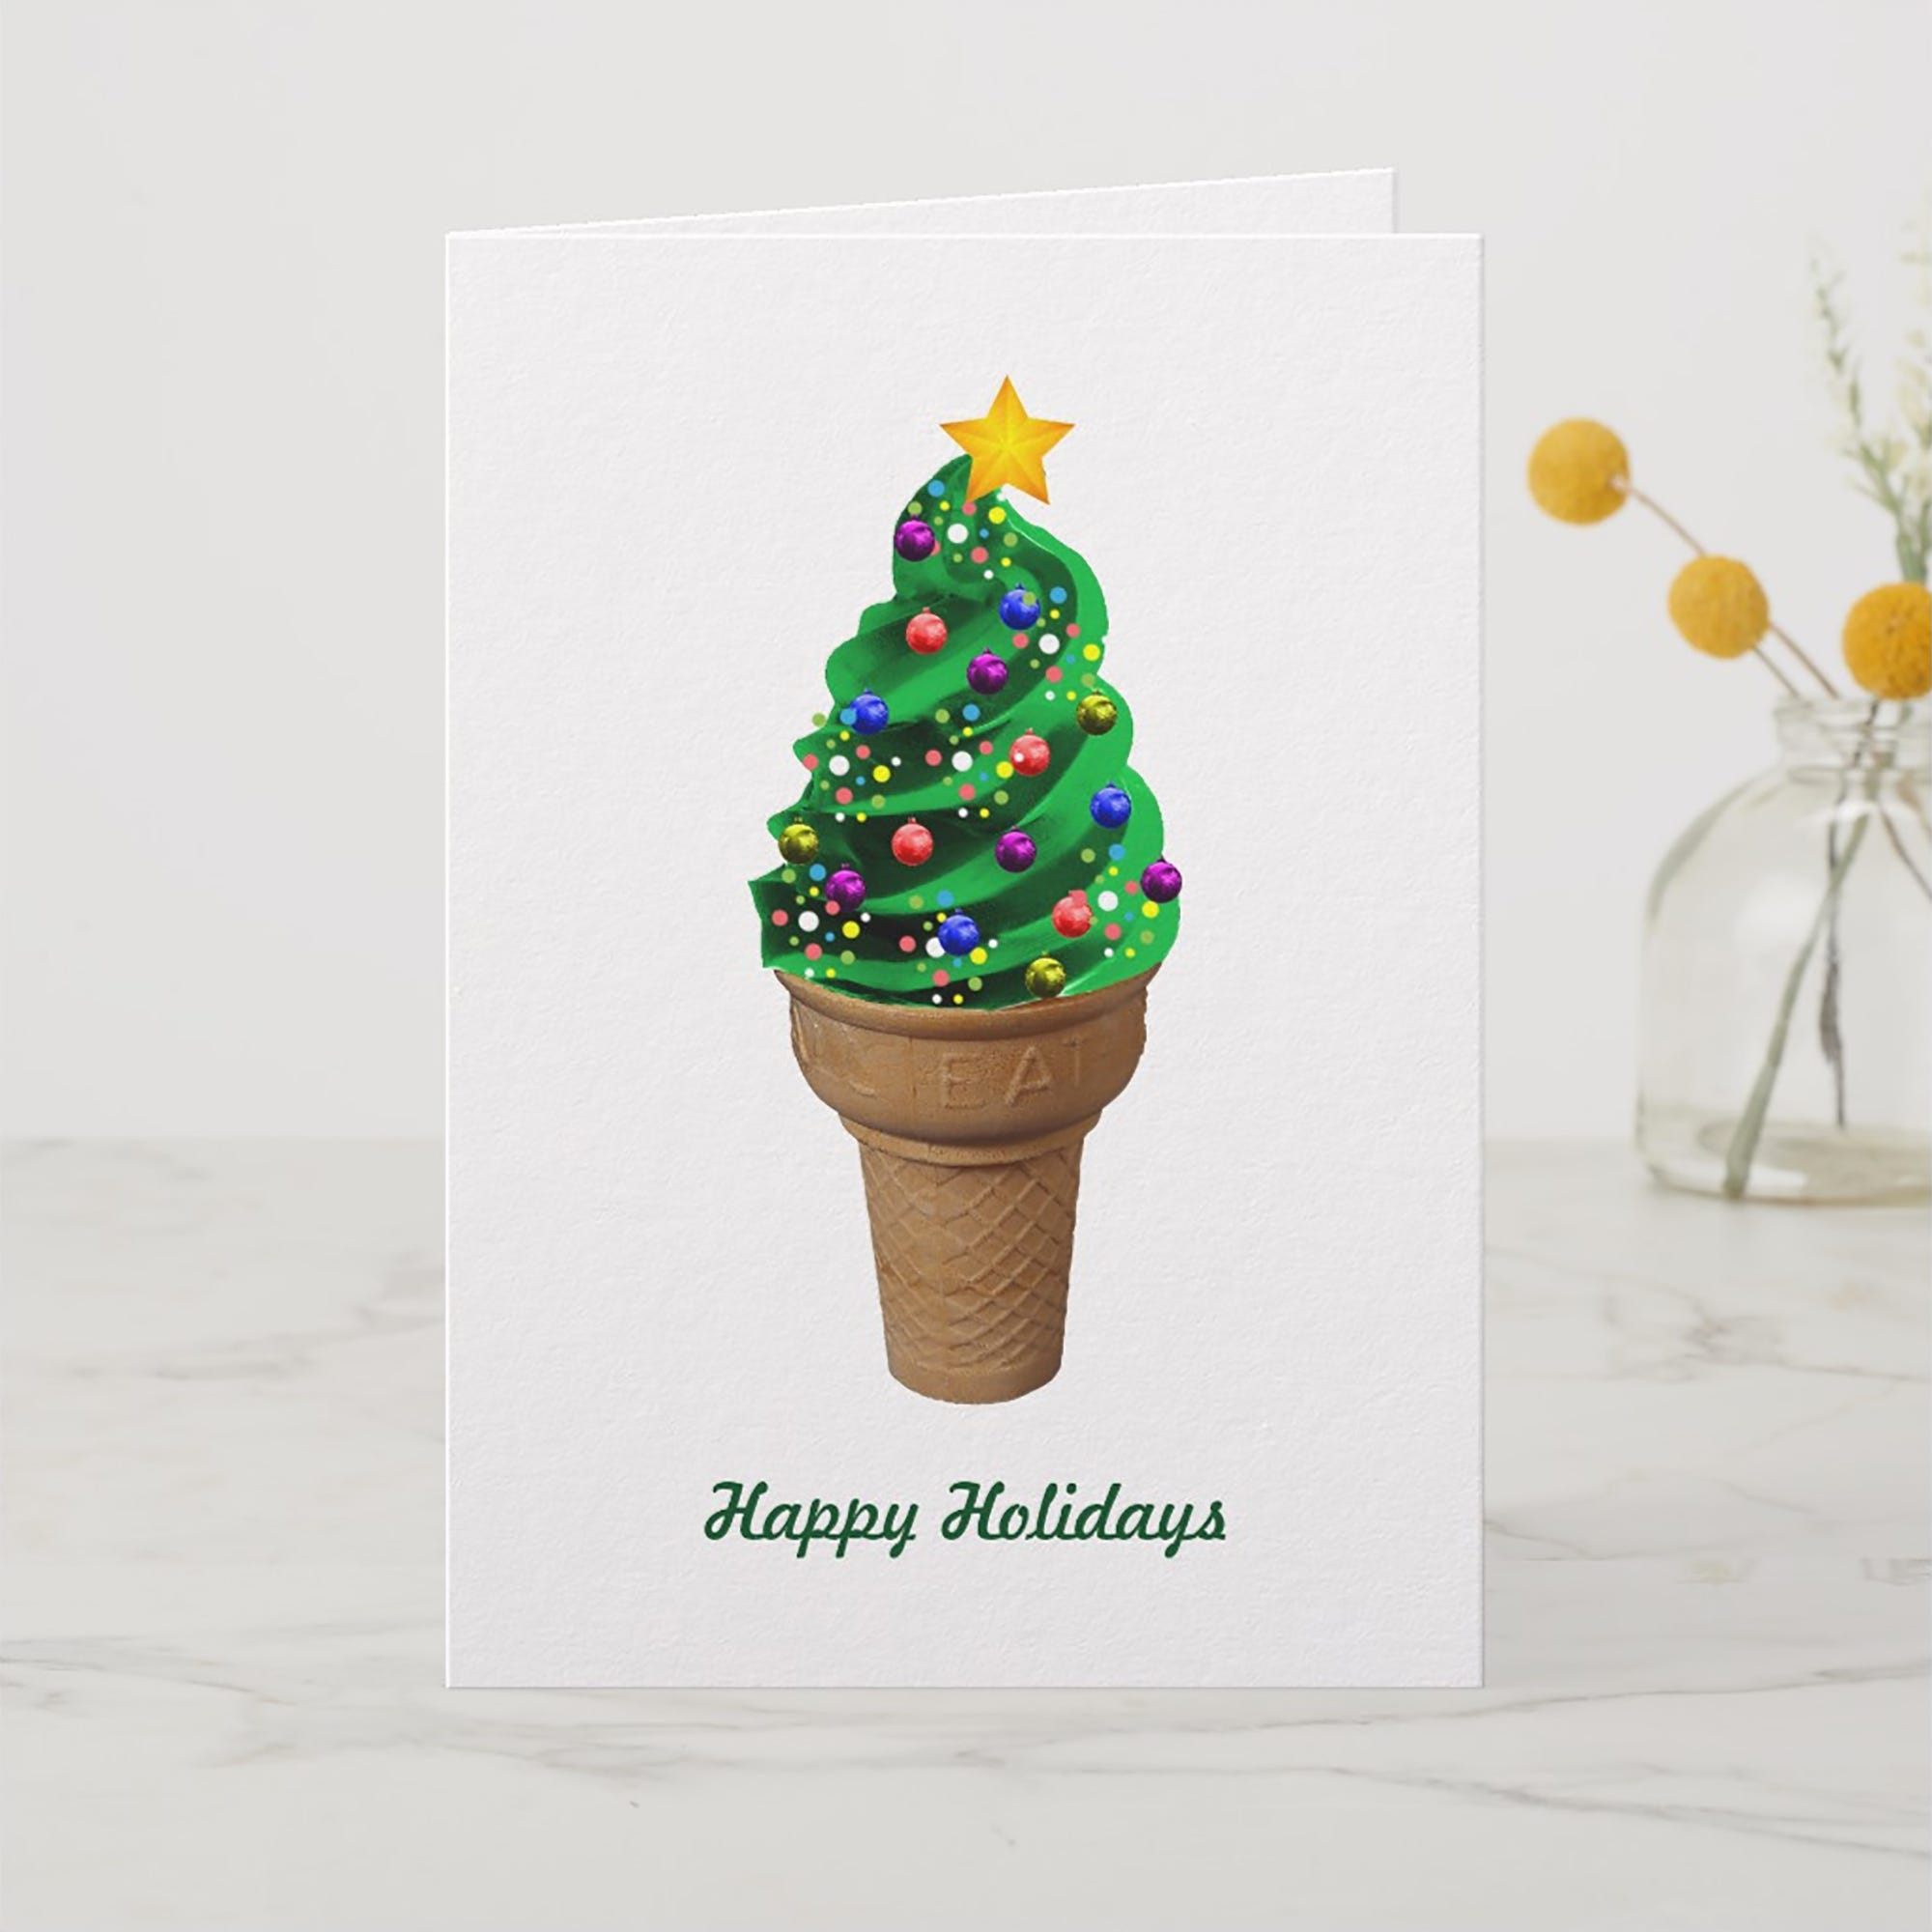 Best Holiday Cards Online For Christmas & New Year 2018